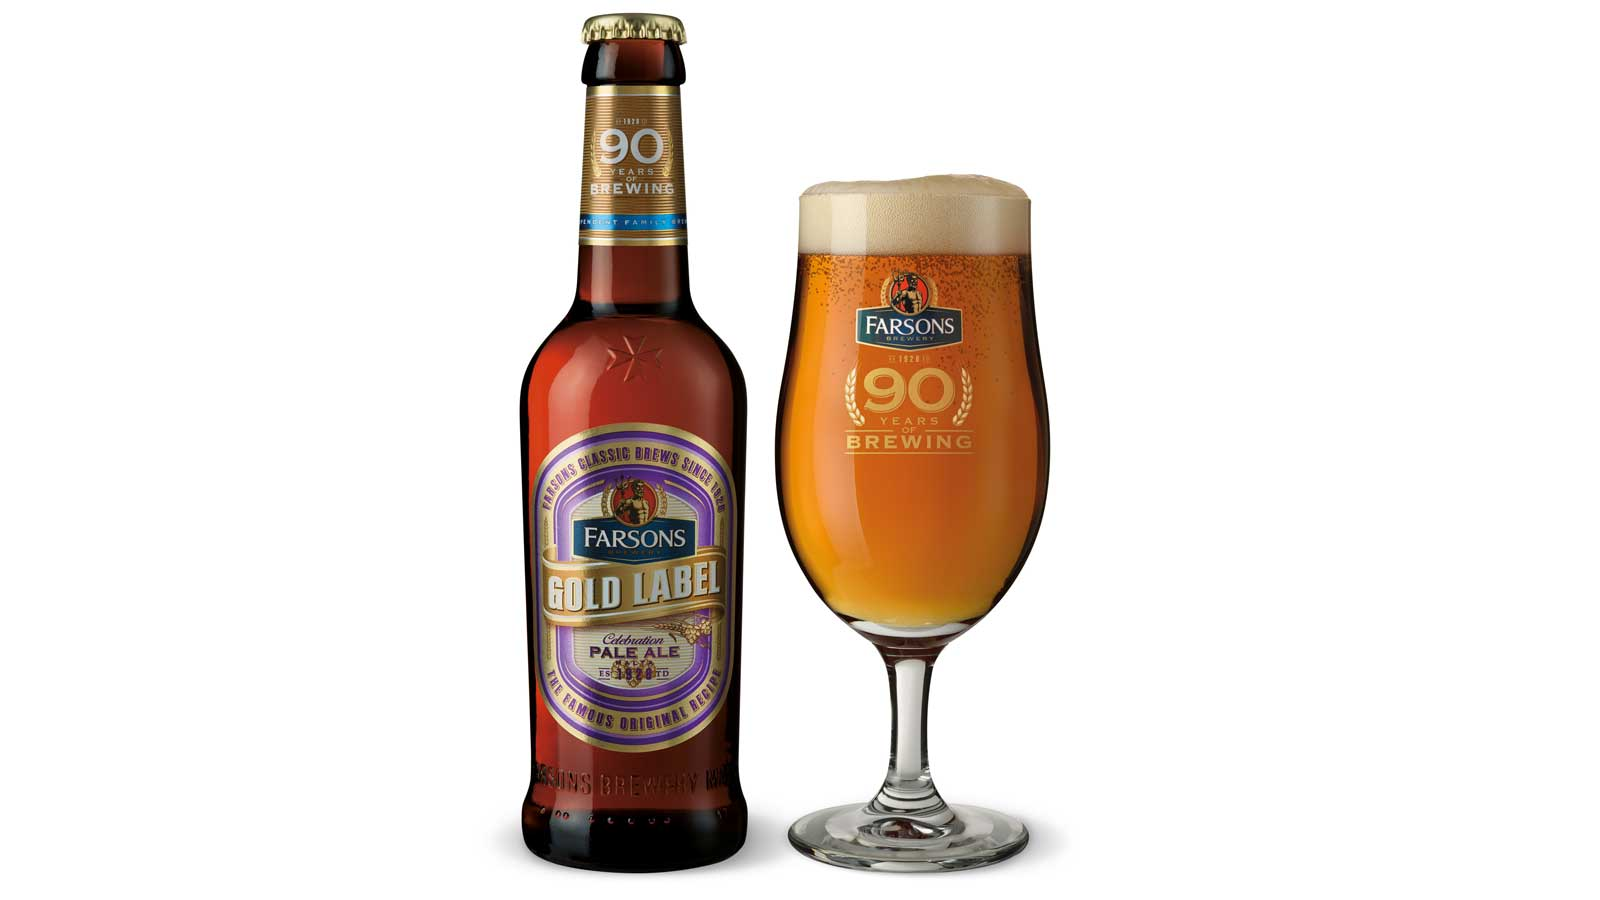 Farsons launches Gold Label Pale Ale to mark 90 years of brewing in Malta